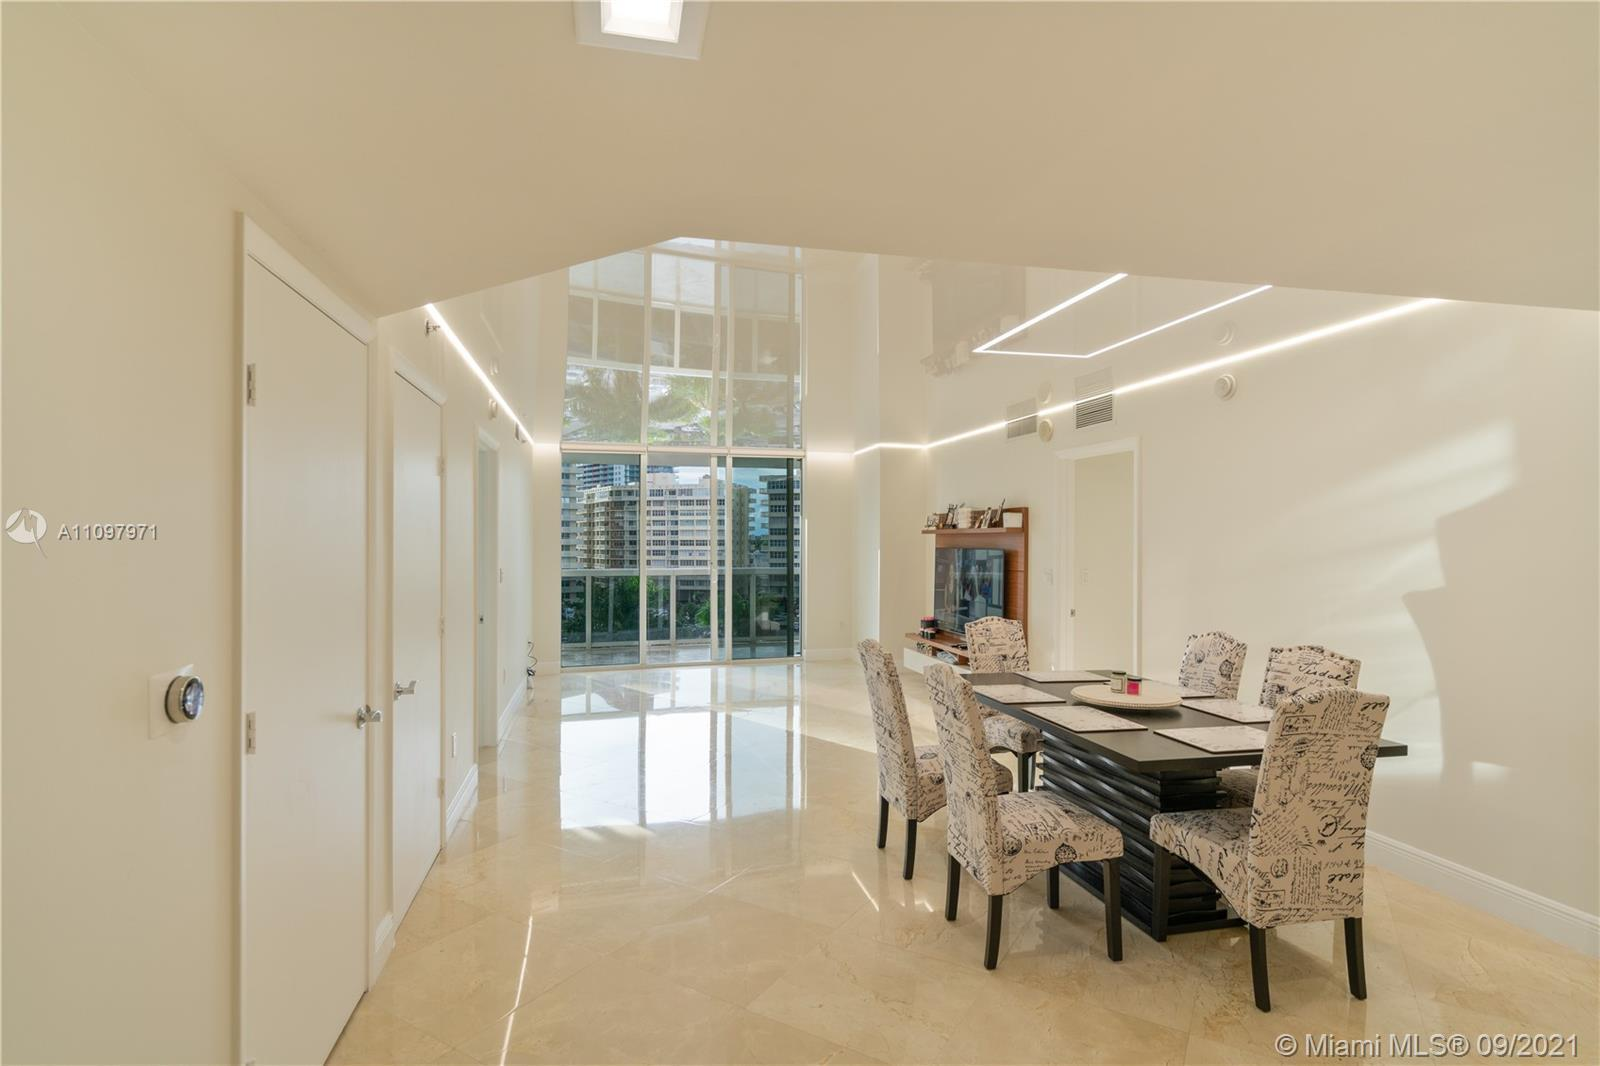 Welcome to the Beach Club! Step inside this custom, highly sought after 3 bedroom, 3 bath. 1,571 sqf